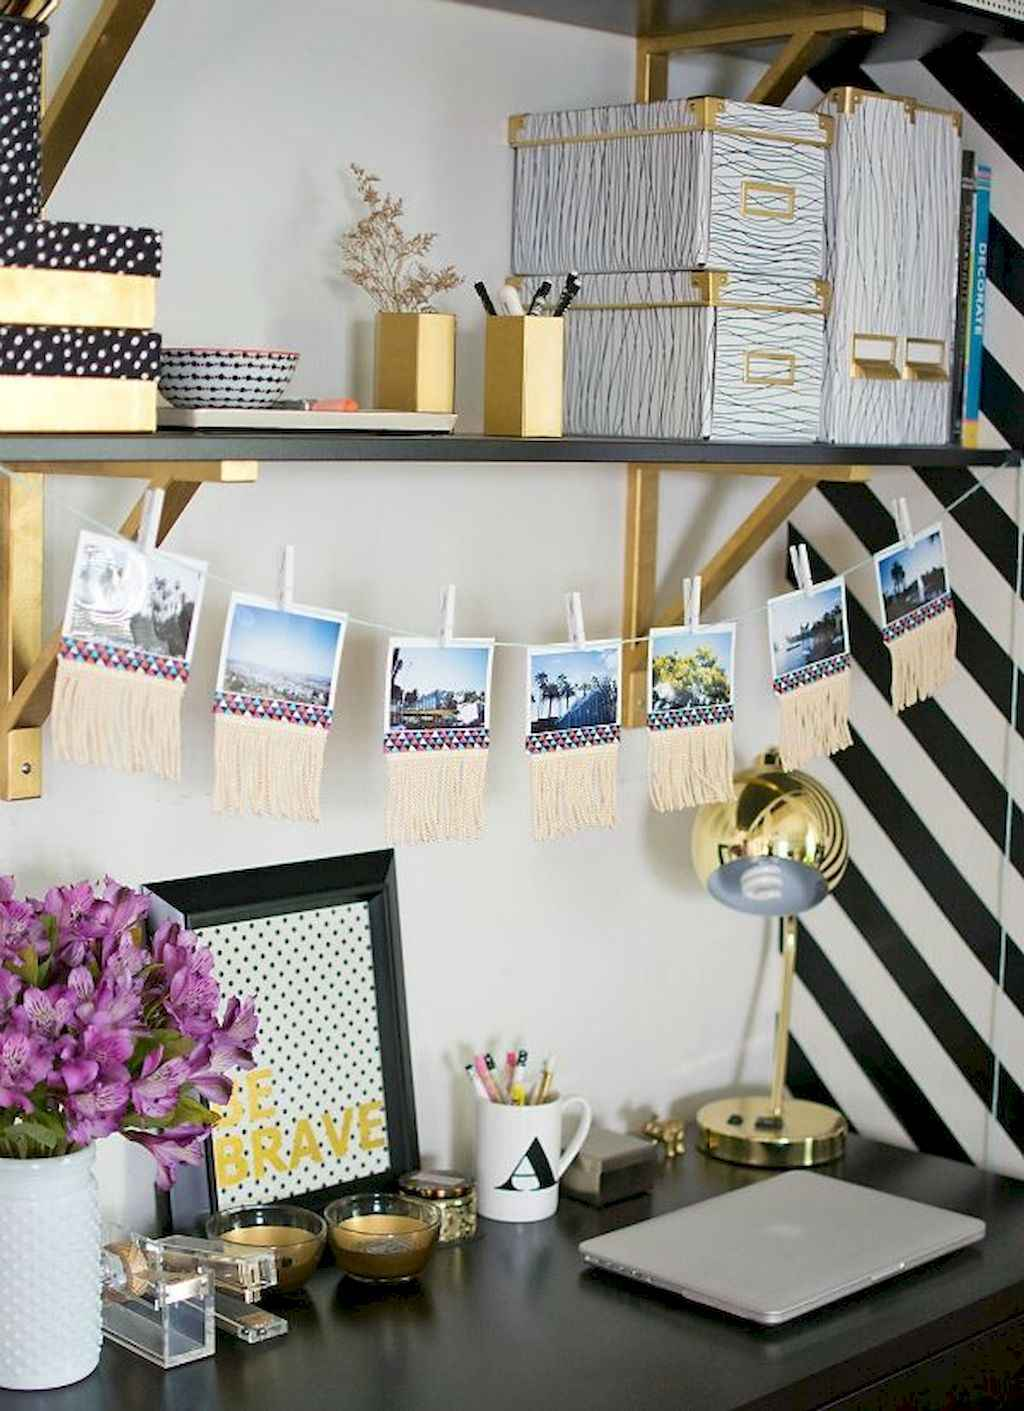 Clever college apartment decorating ideas on a budget (70)